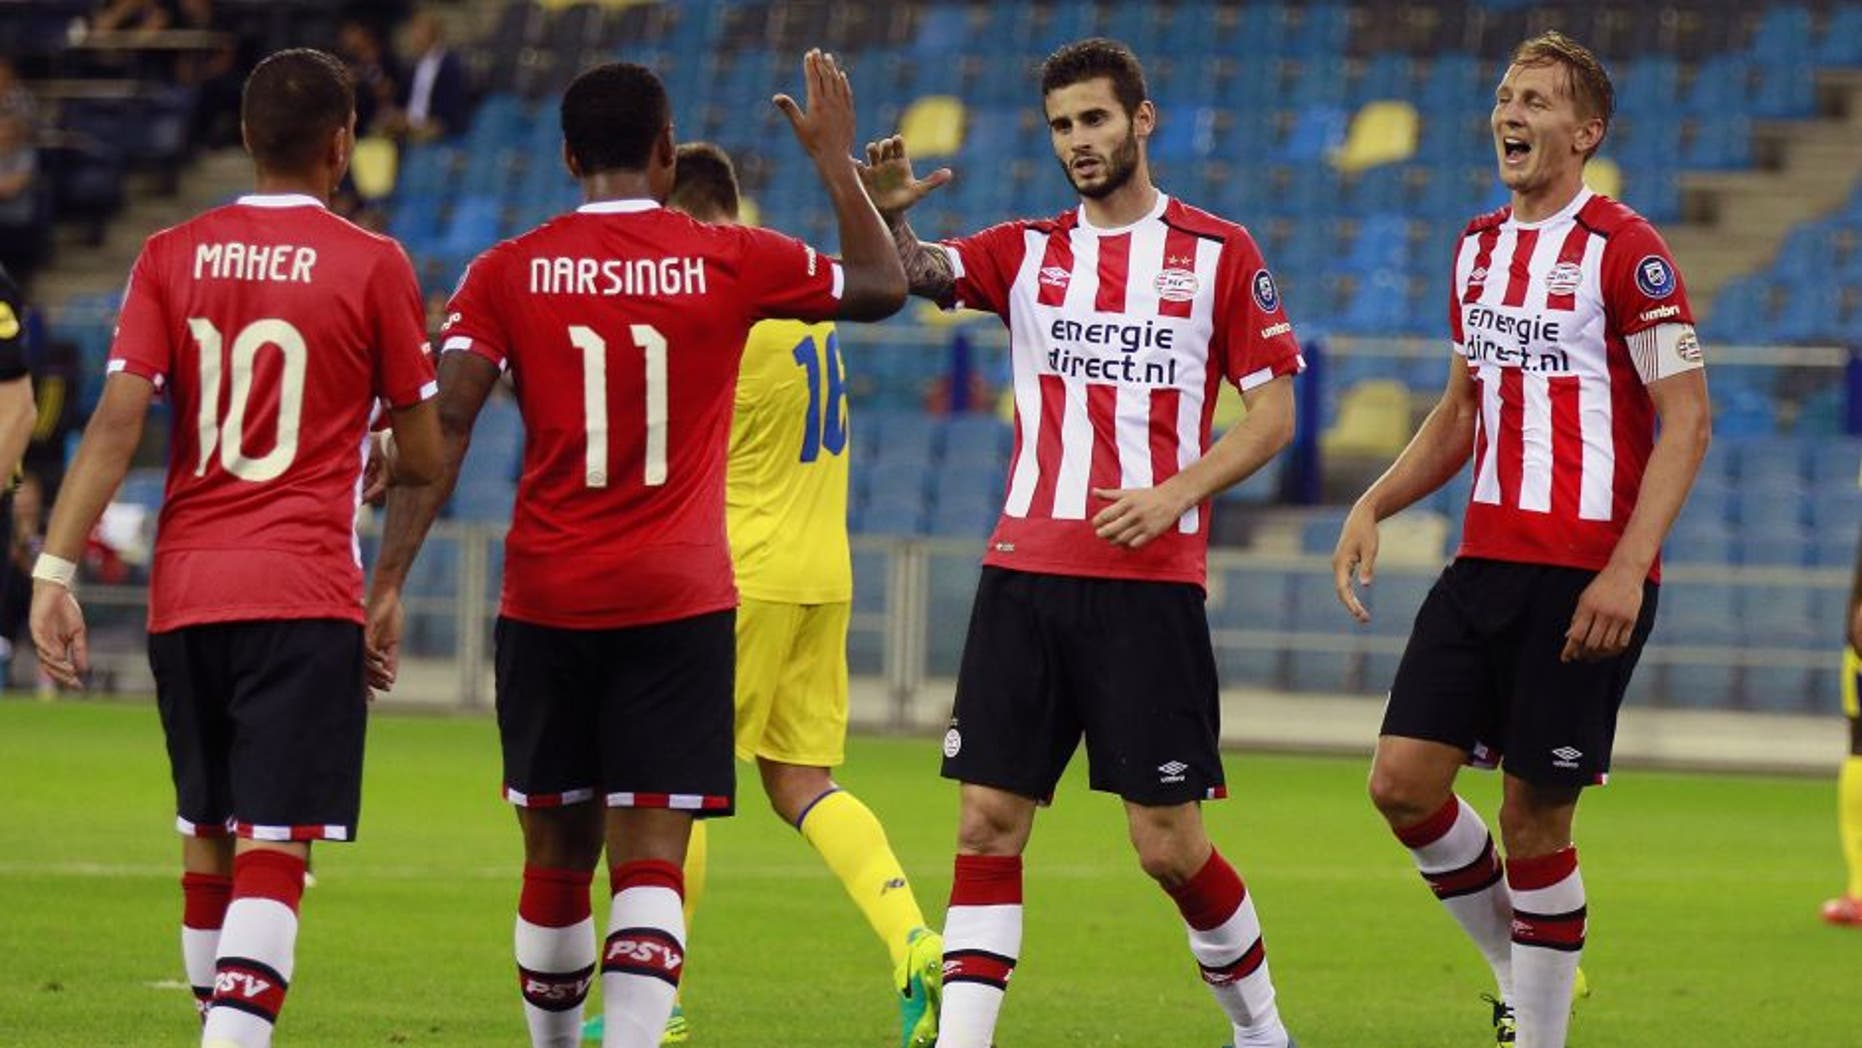 Adam Maher Luciano Narsingh Gaston Pereiro Luuk de Jong during the GelreDome tournament match between PSV Eindhoven and FC Porto on July 21, 2016 at the Gelredome stadium in Arnhem, The Netherlands.(Photo by VI Images via Getty Images)